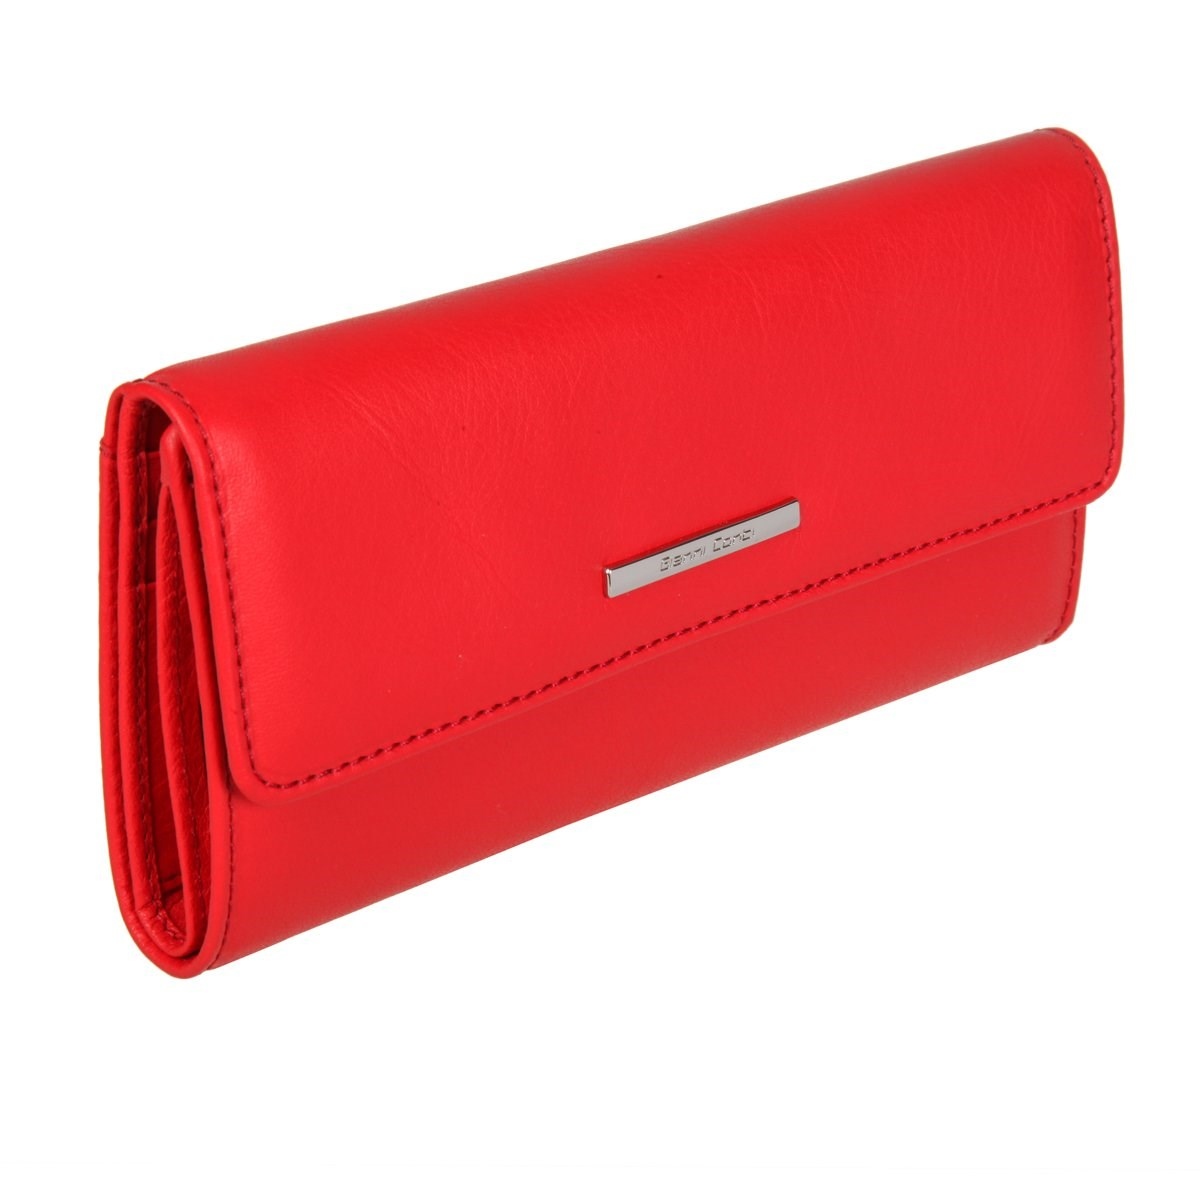 Coin Purse Gianni Conti 9508245 red luxury brand fashion wallet female genuine leather wallet women purse phone long purses coin purse money bag women card holder